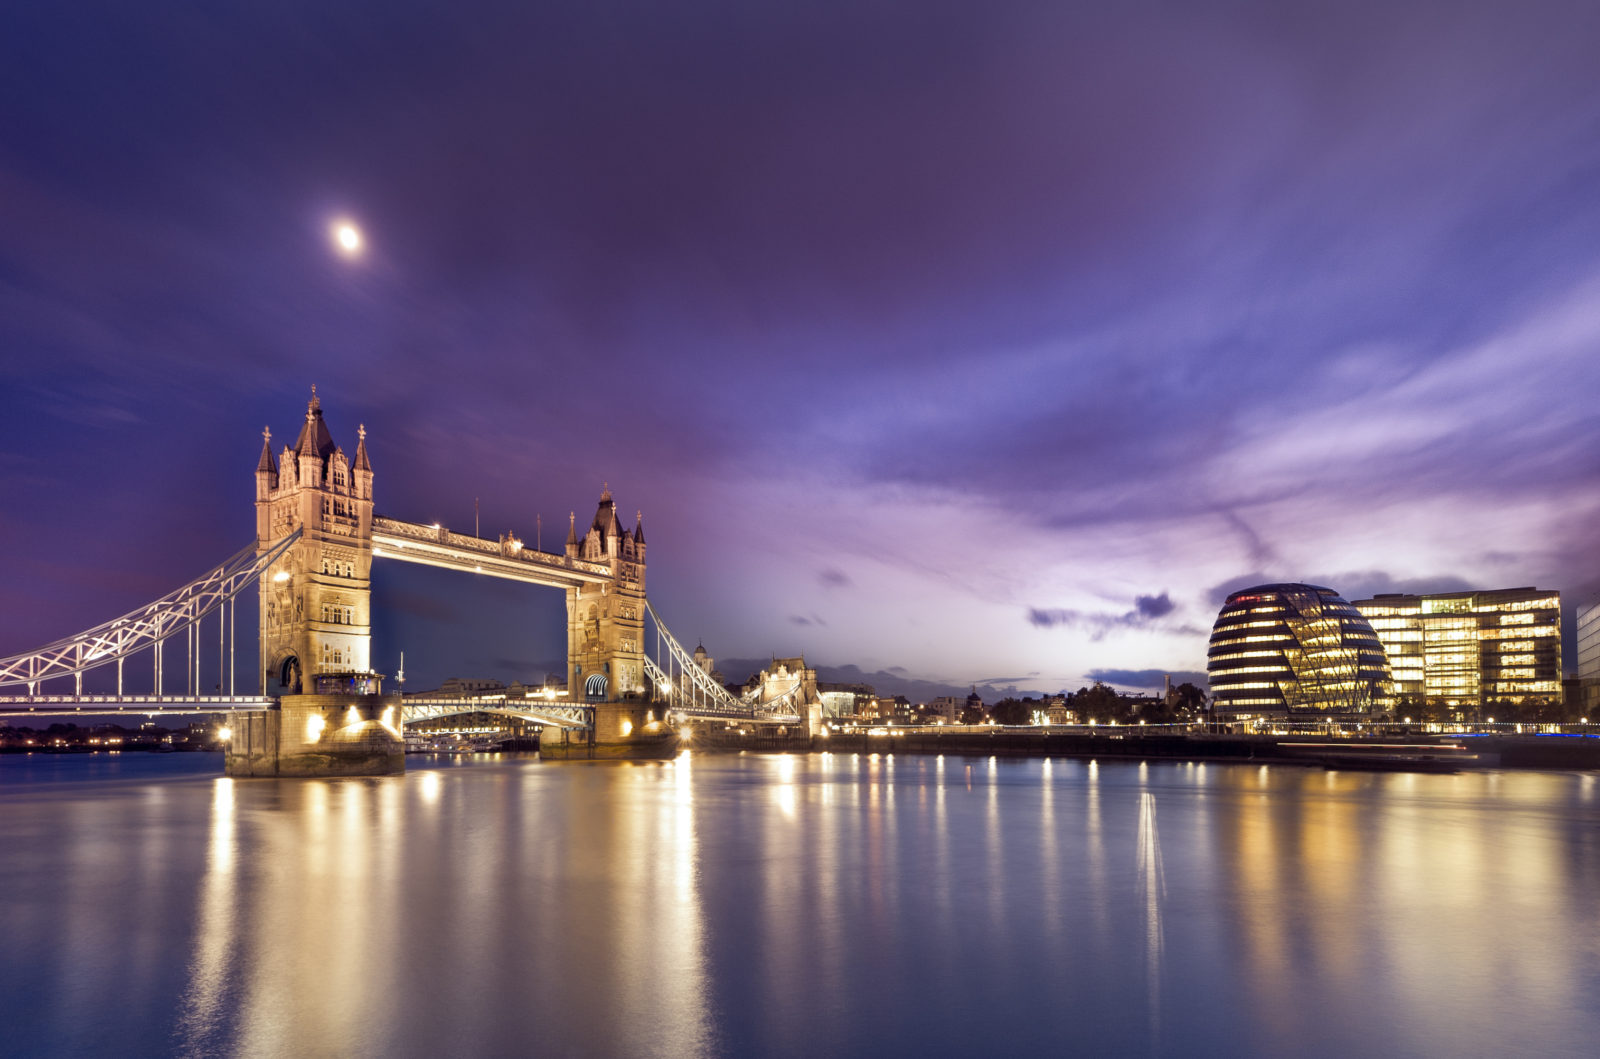 beautiful view of tower bridge and commercial buildings in london